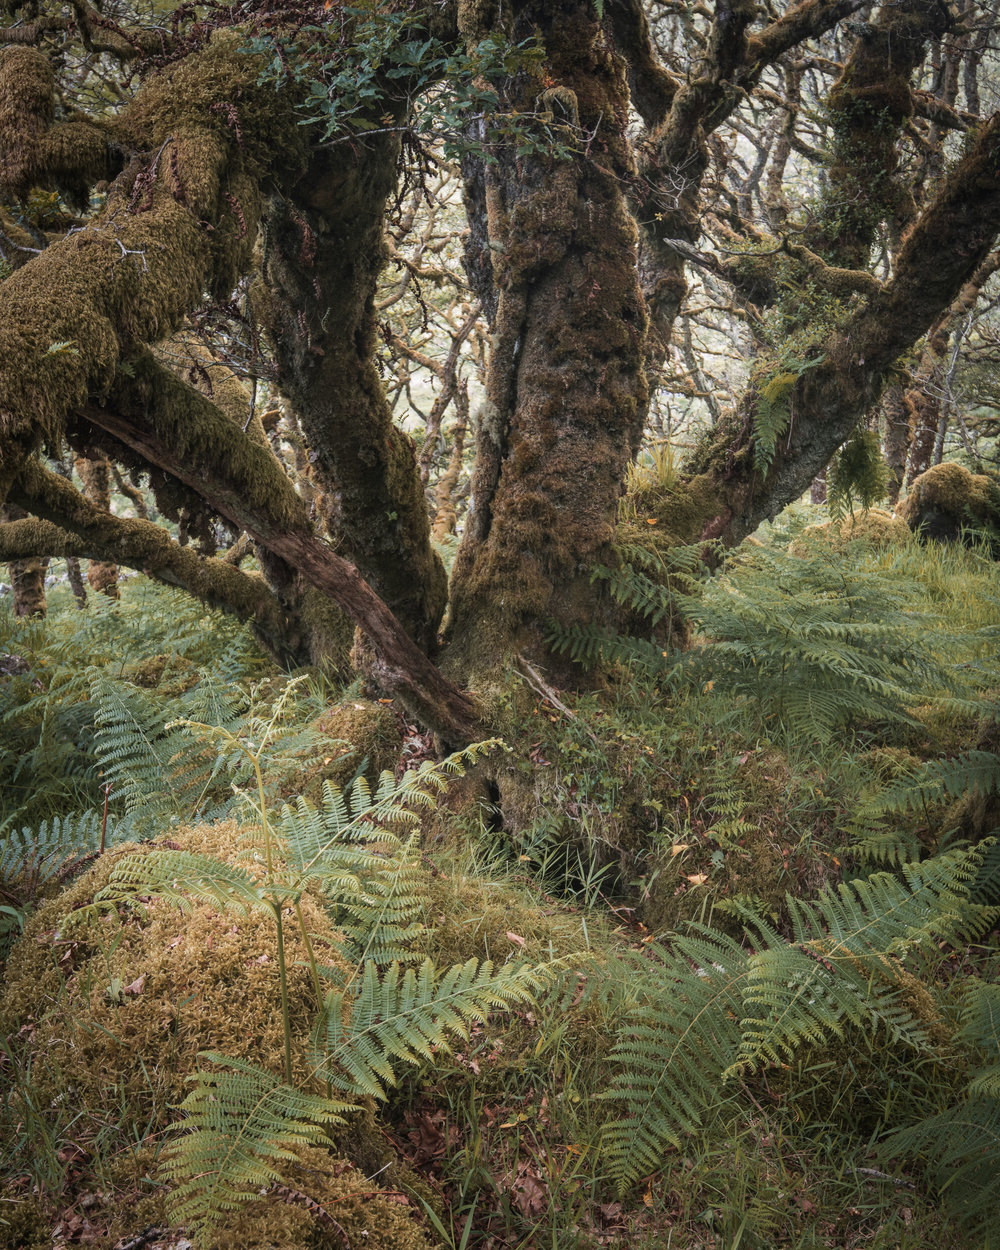 Wistman's Wood, Dartmoor, Devon